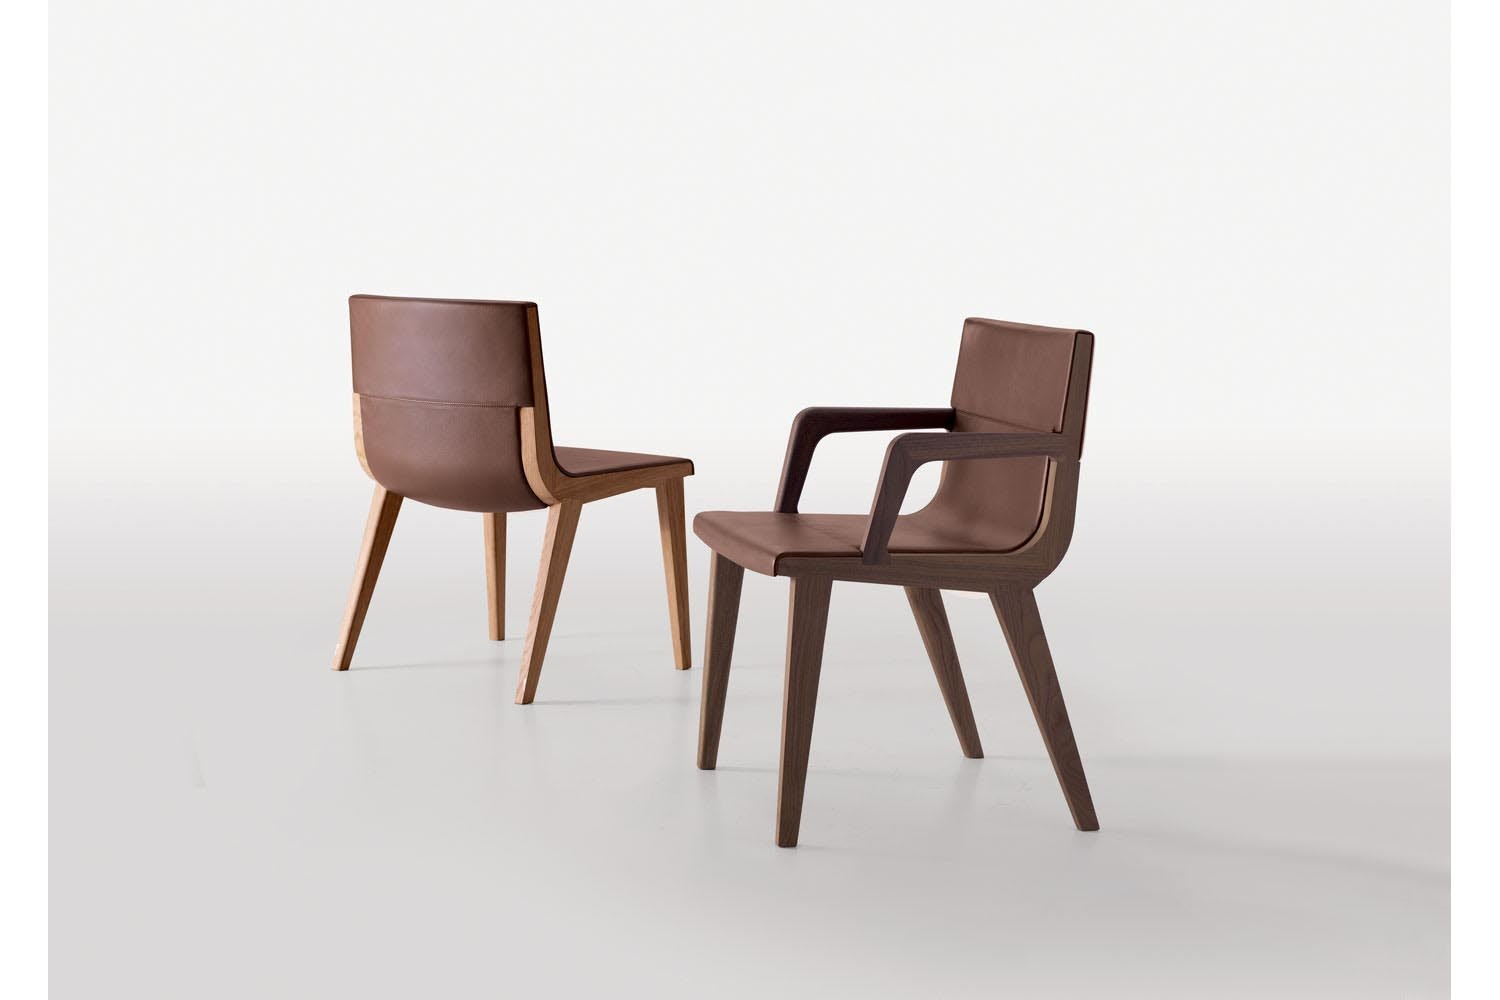 space furniture chairs. acanto chair by antonio citterio for maxalto space furniture chairs